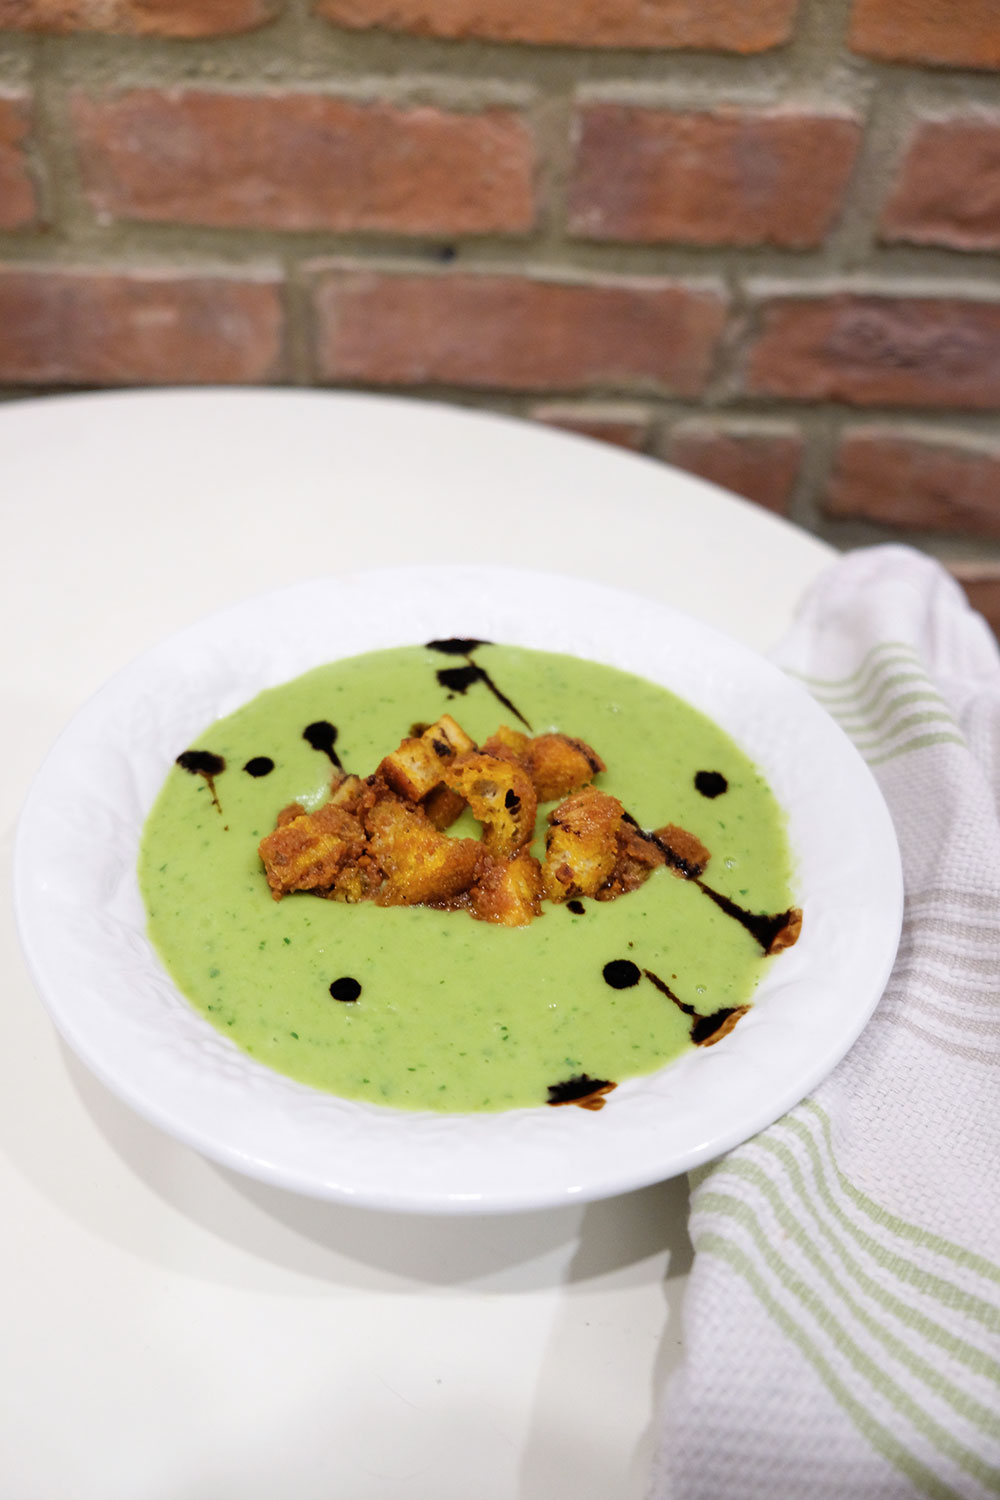 Split-Pea Soup with White Truffle Balsamic Glaze and Sun-dried Tomato Croutons by Courtney Zoffness — Delicious & Sons